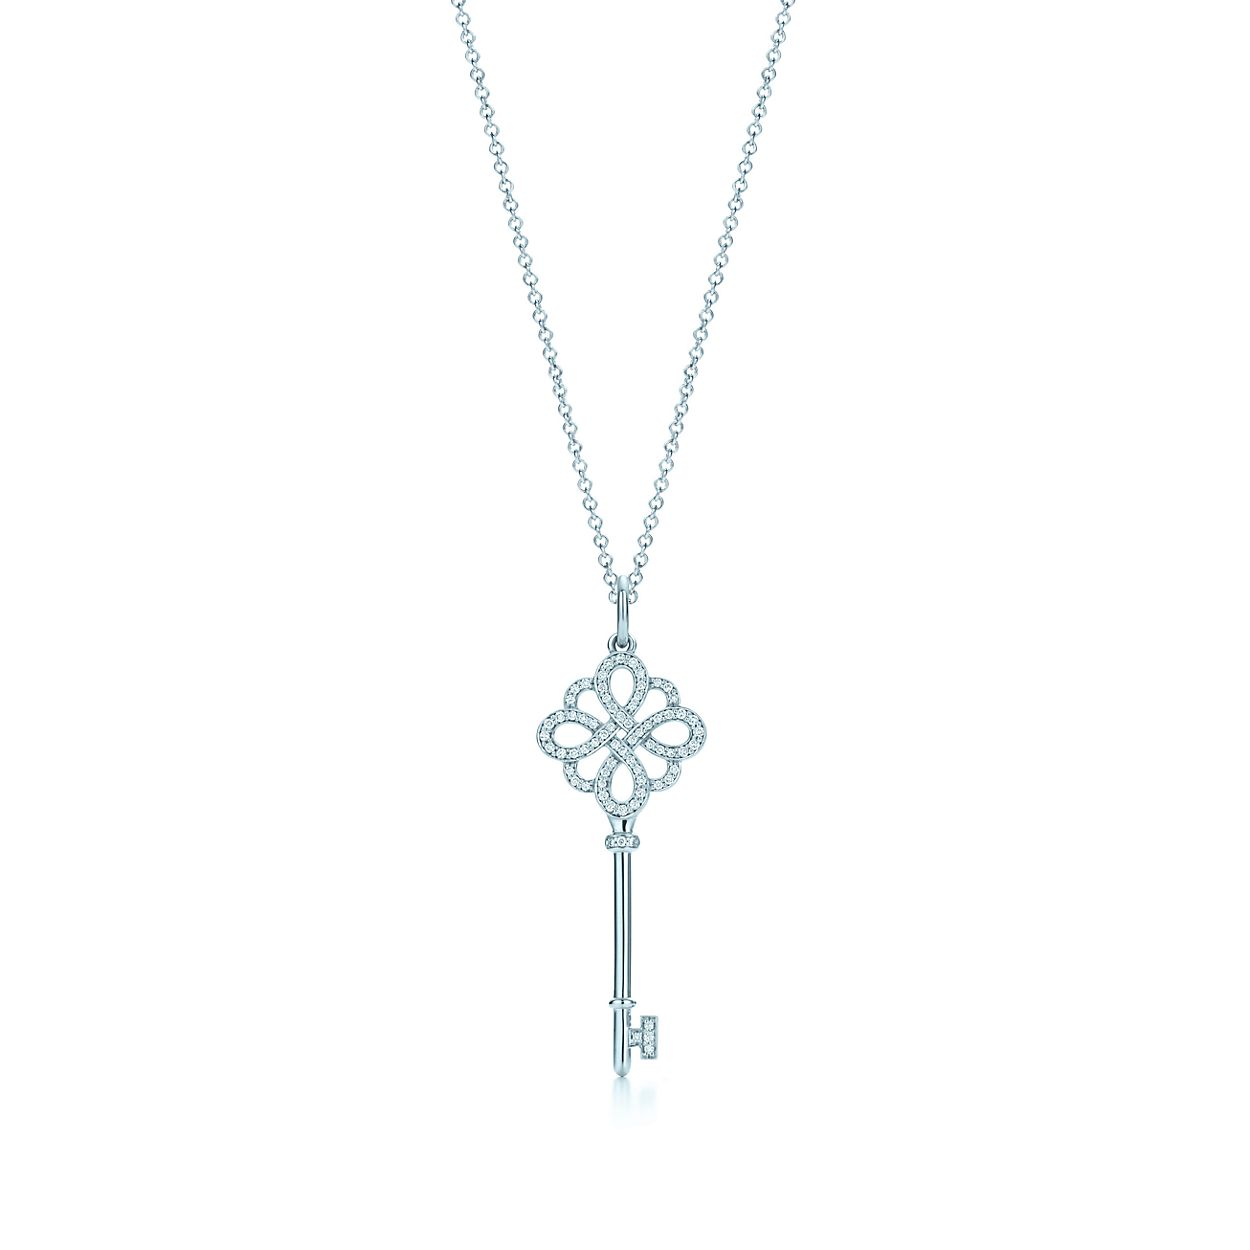 Tiffany keys knot key pendant in 18k white gold with diamonds on a tiffany keysknot key pendant aloadofball